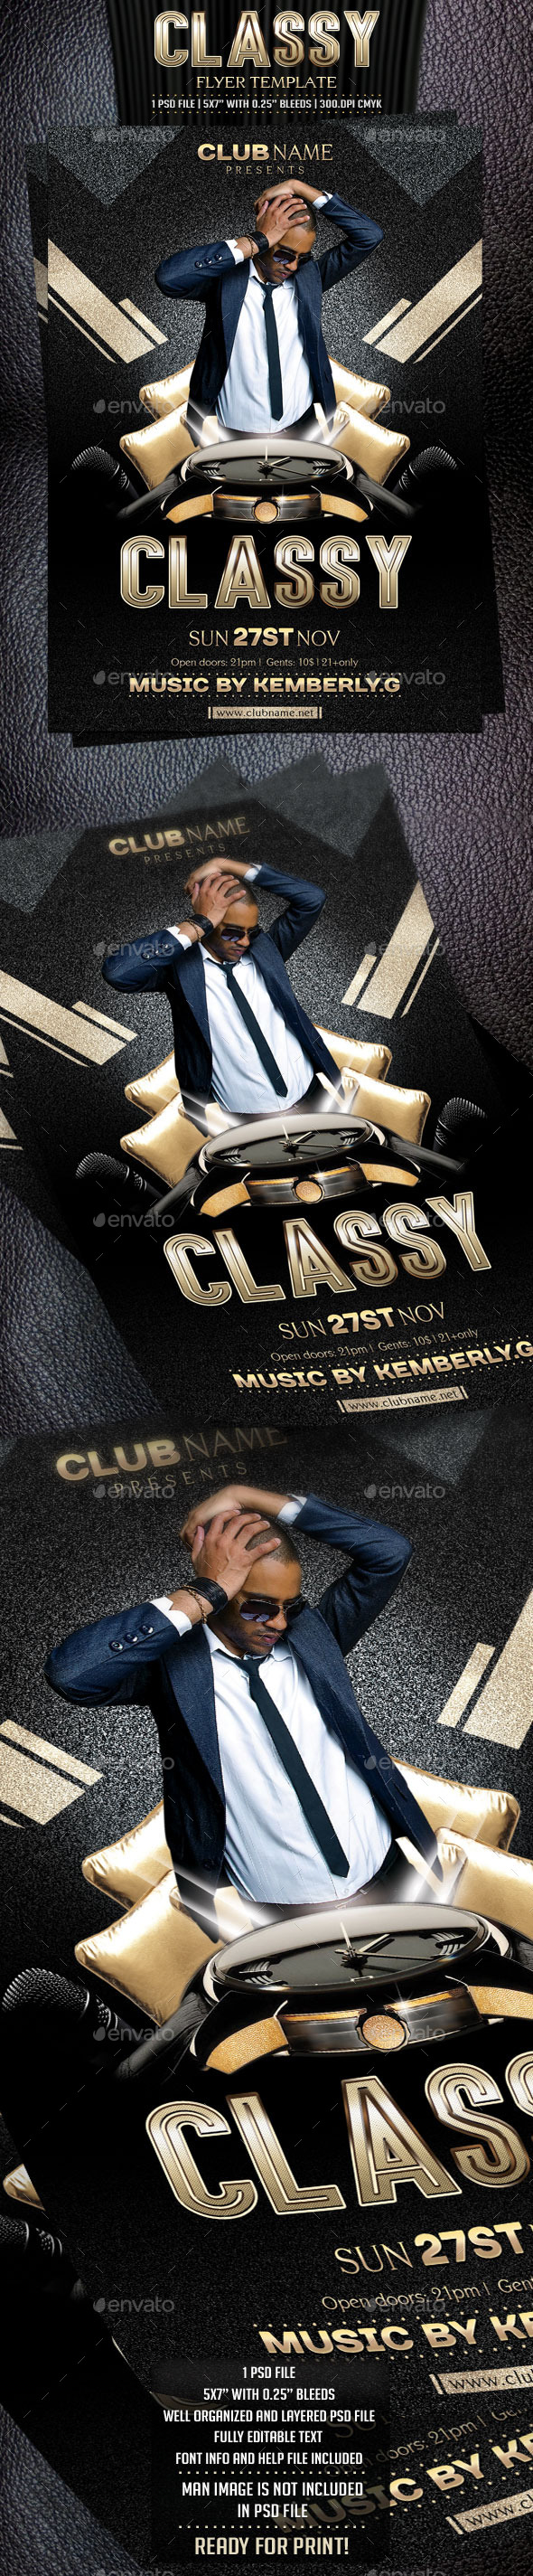 GraphicRiver Classy Flyer Template 9115008